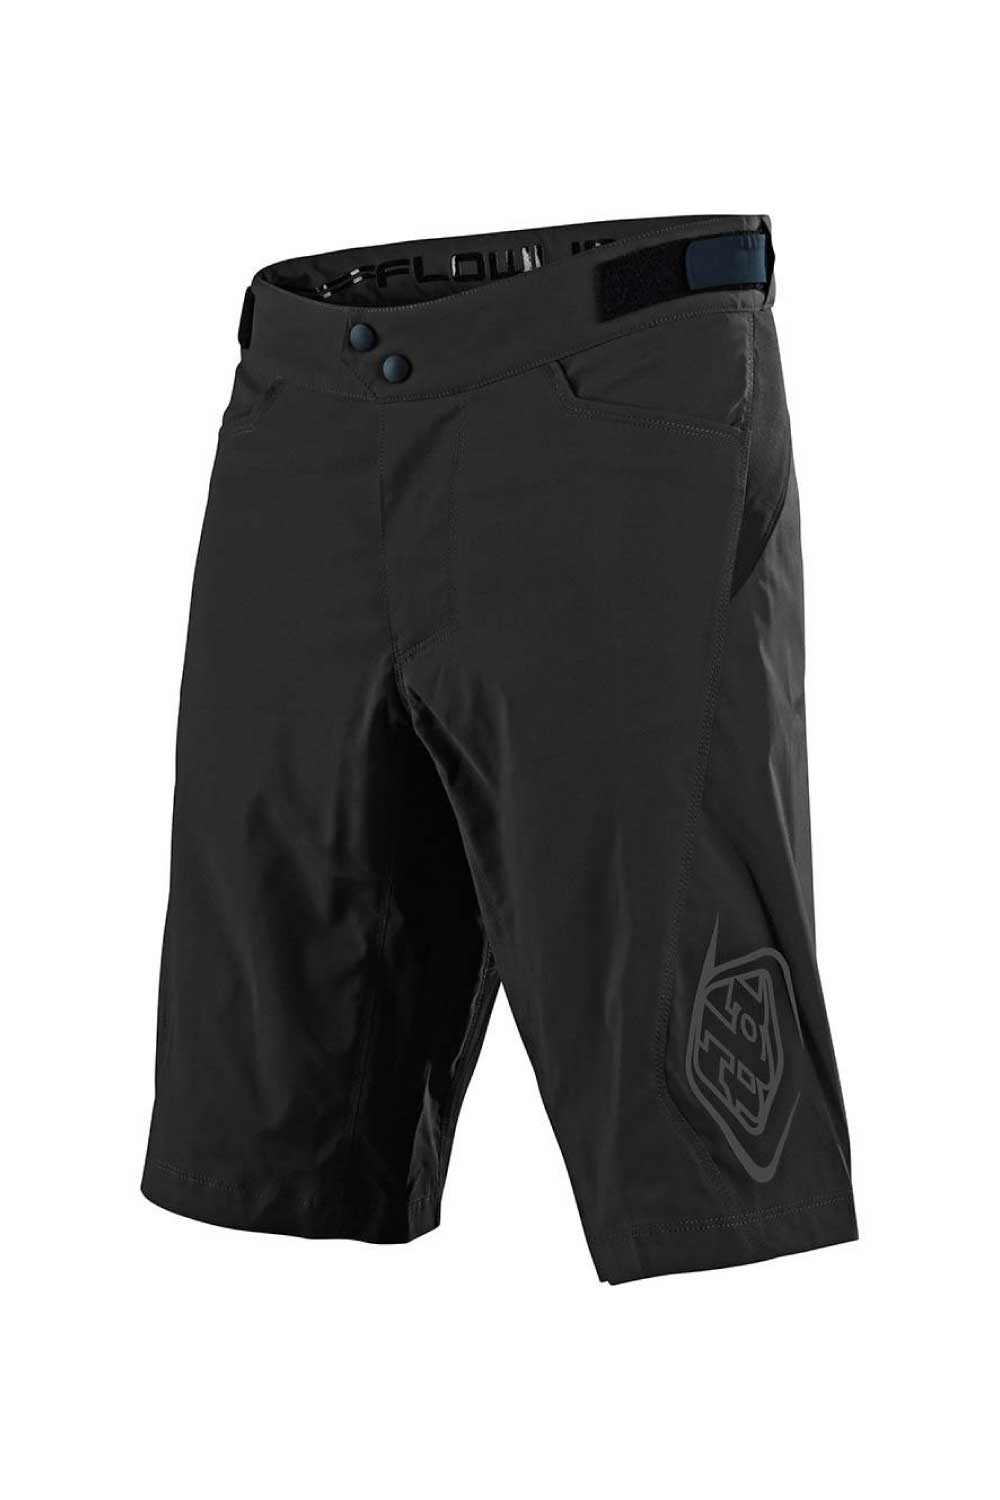 Troy Lee Designs 2020 Flowline MTB Shorts